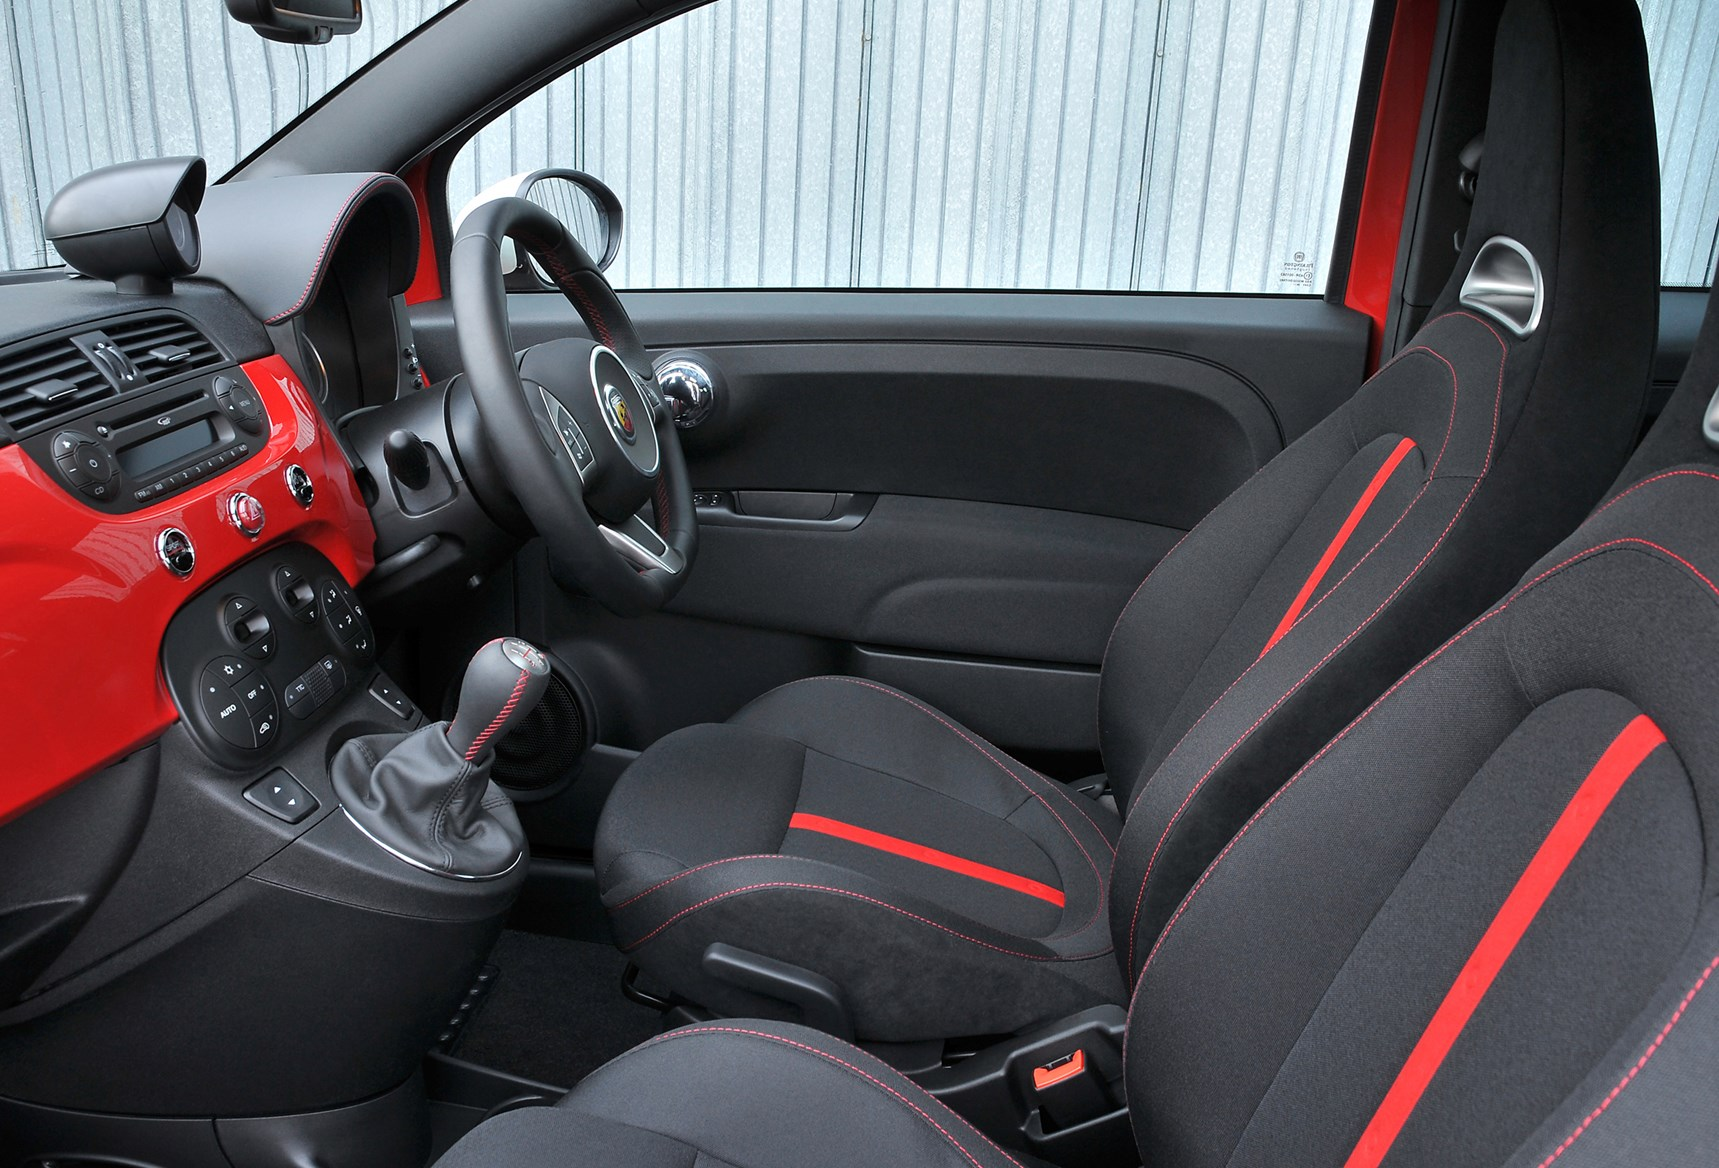 Abarth 500 Hatchback (2009 - 2015) Features, Equipt and ...